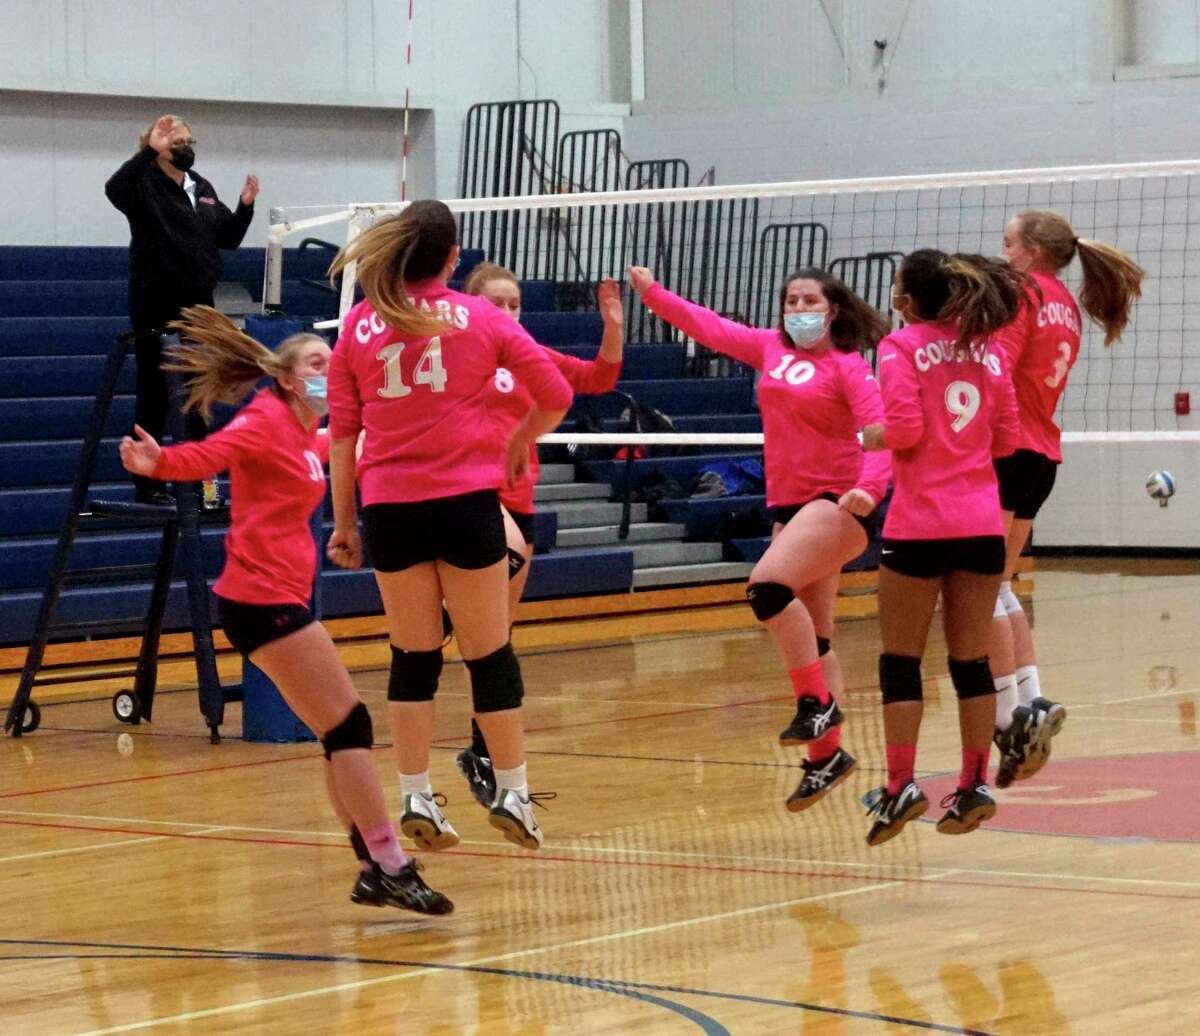 Members of the Crossroads Charter Academy volleyball team celebrate a serving ace during their win over Mason County Eastern in game one of a tri on Thursday evening in Big Rapids. (Pioneer photo/Joe Judd)